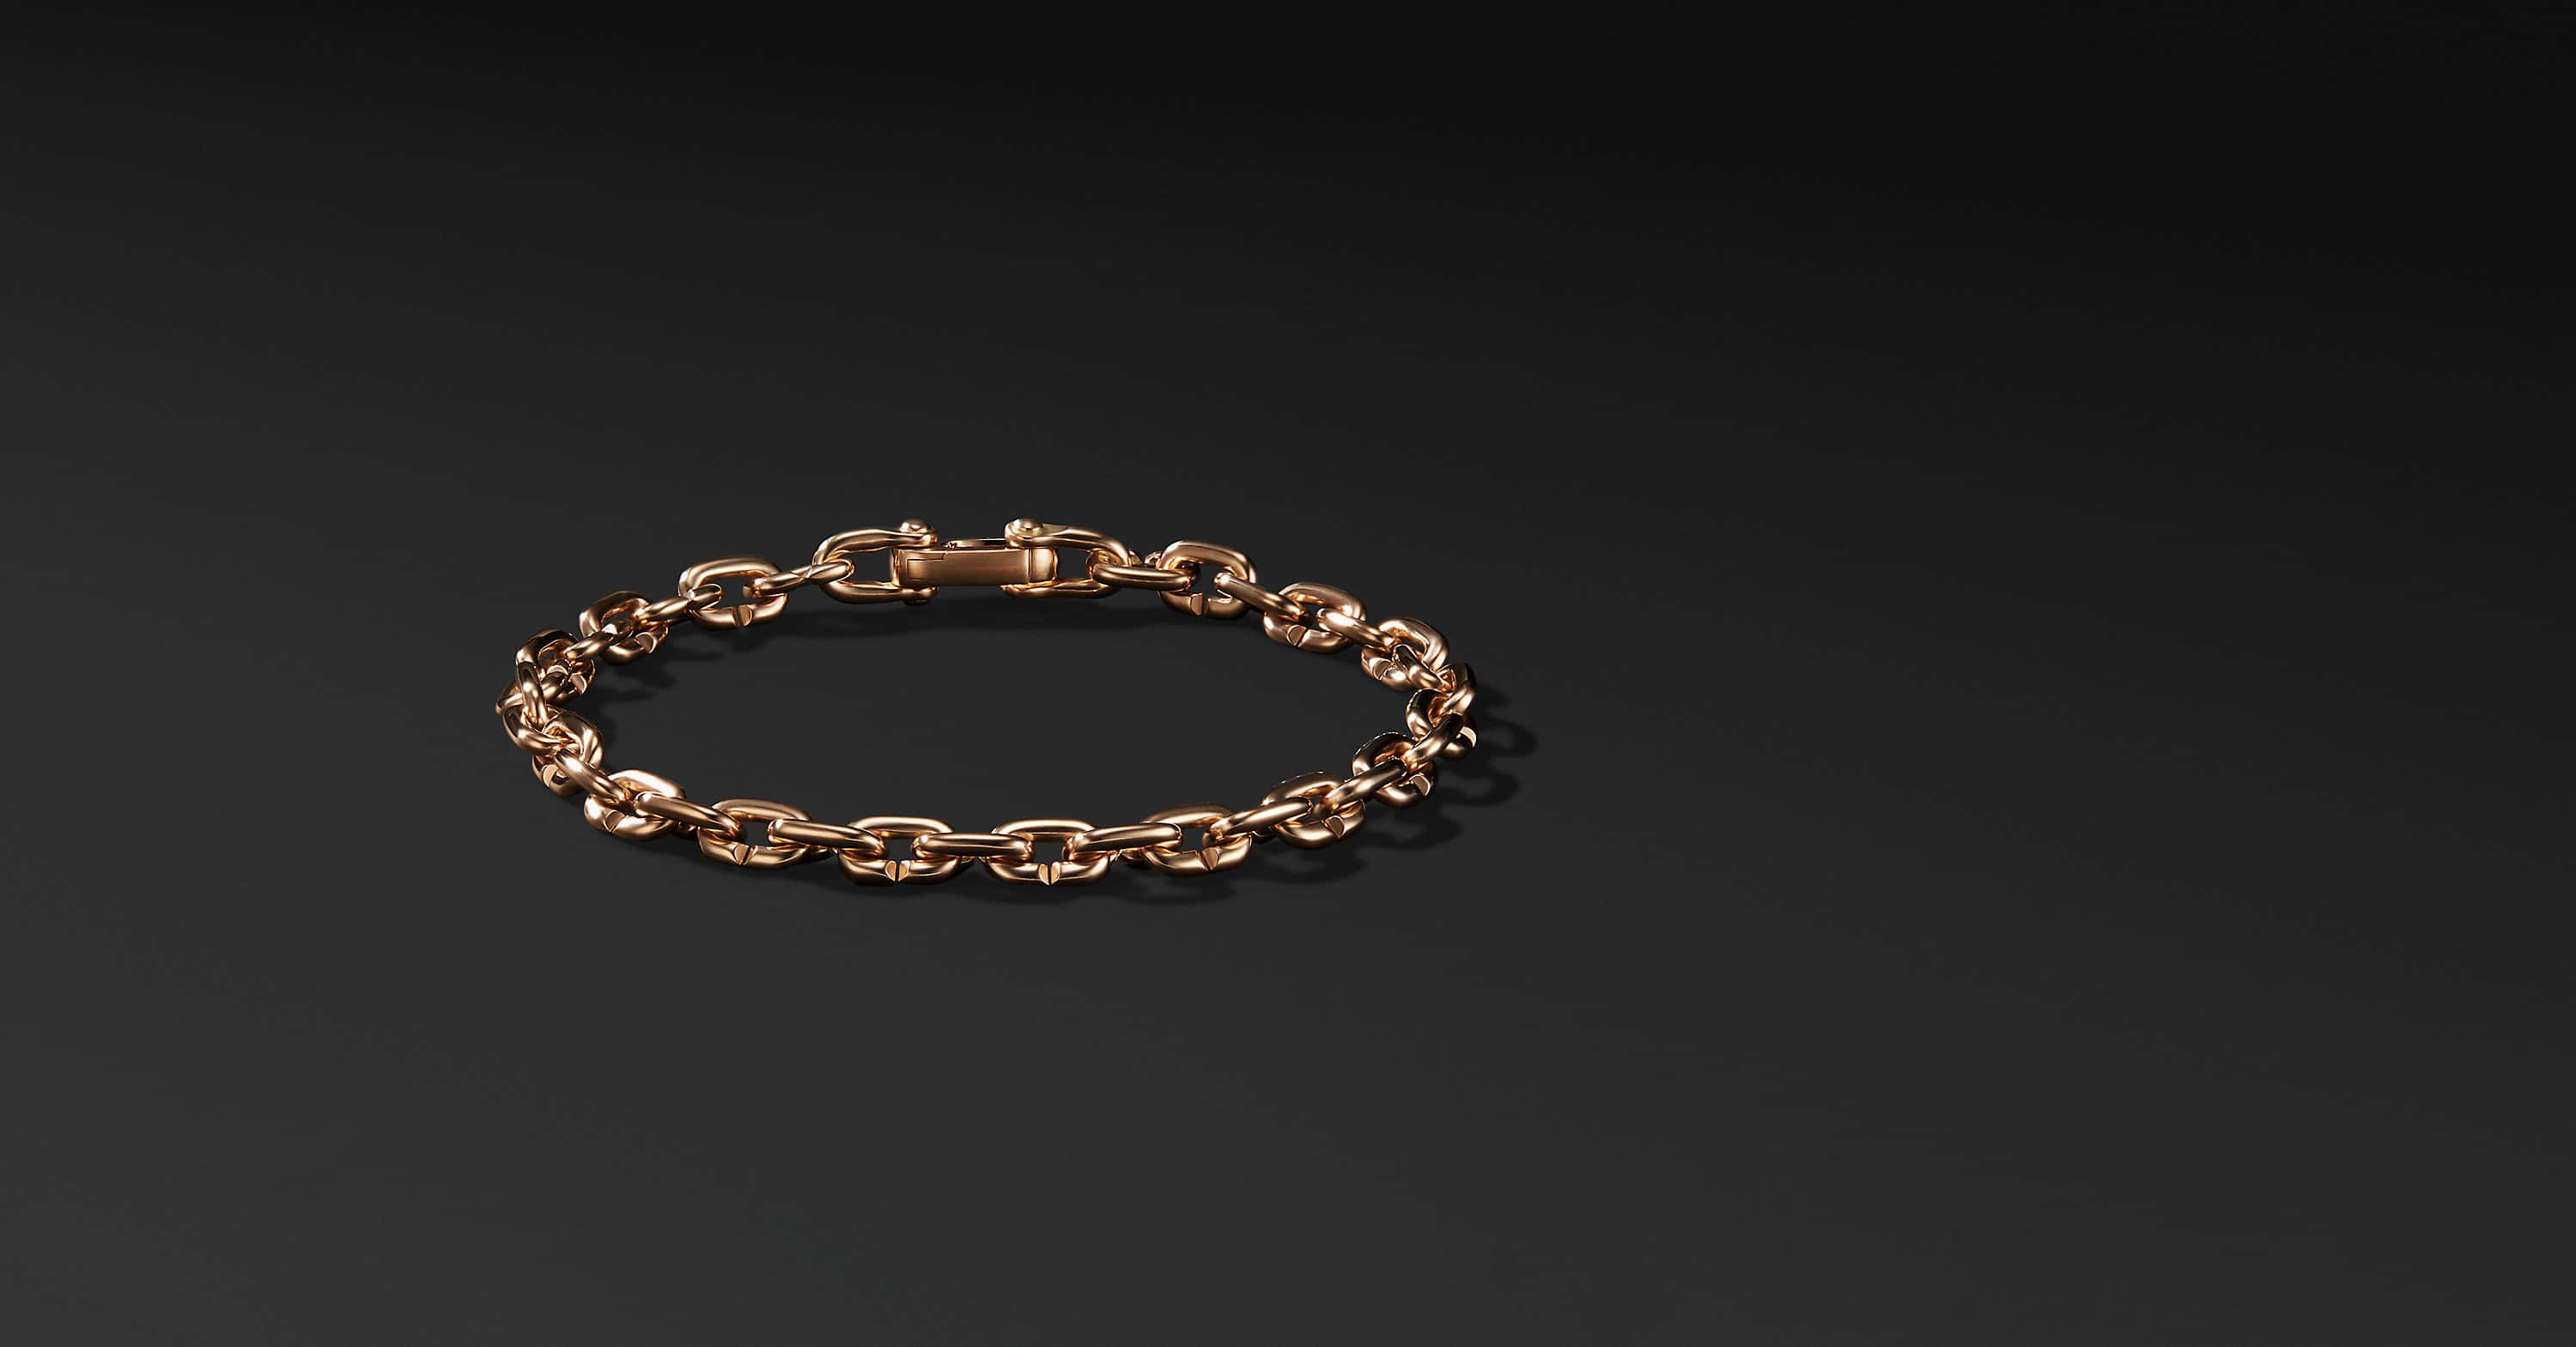 Chain Link Narrow Bracelet in 18K Rose Gold